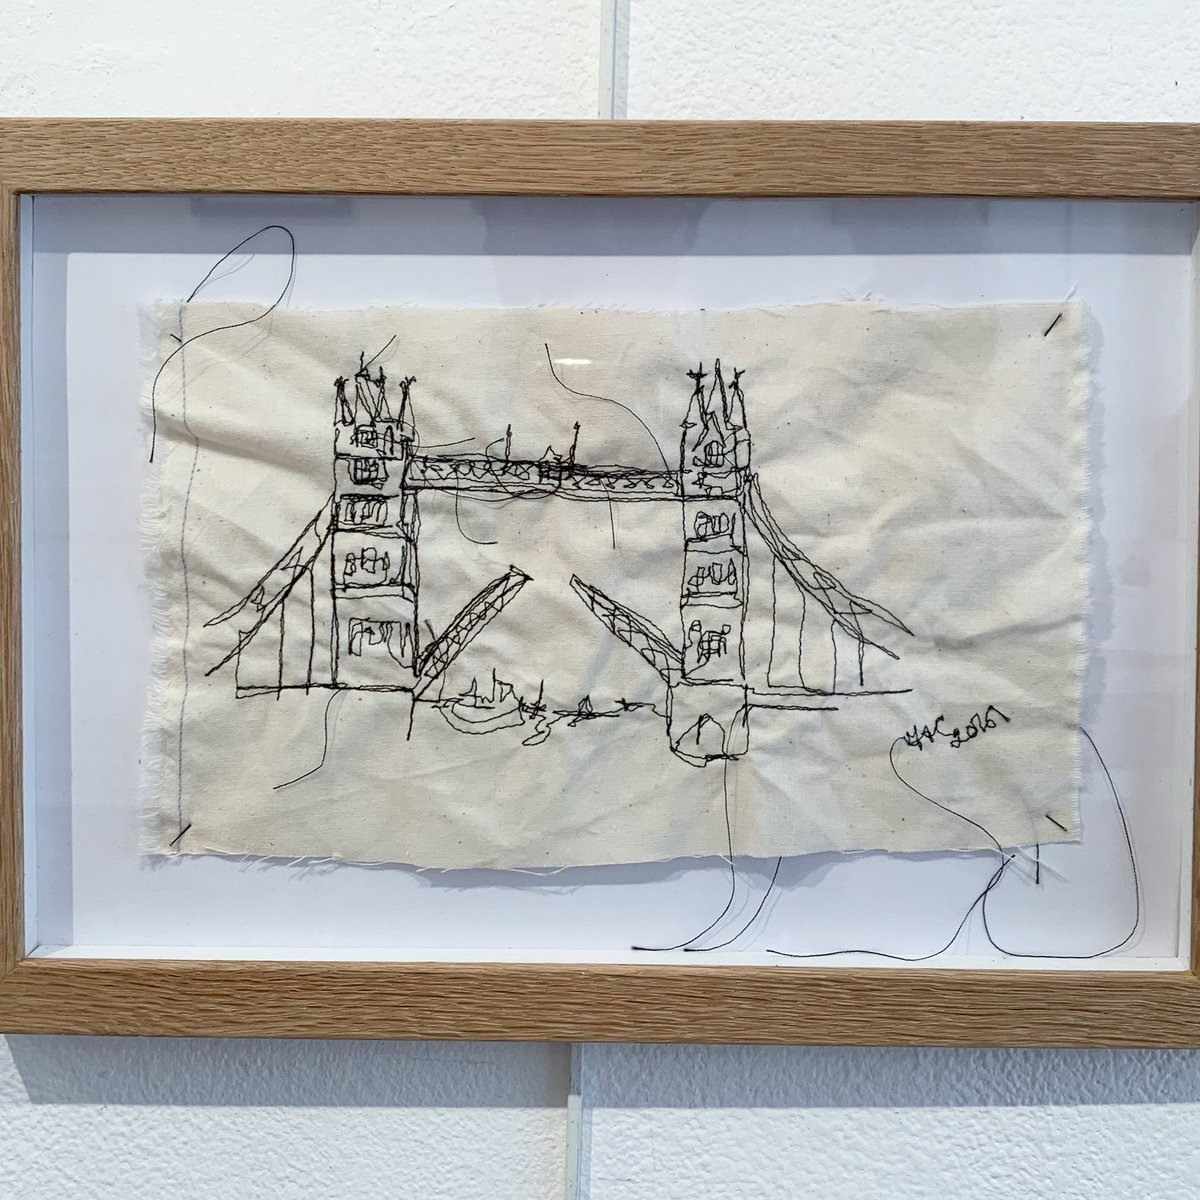 Just gone up on insta for #artistsupportpledge is this... Tower Bridge, free embroidered on cotton - beautifully professionally framed in oak £180 #art #artforsale #embroidery #textileart #london @_MarthaMaypic.twitter.com/HV5Qsvjk8T